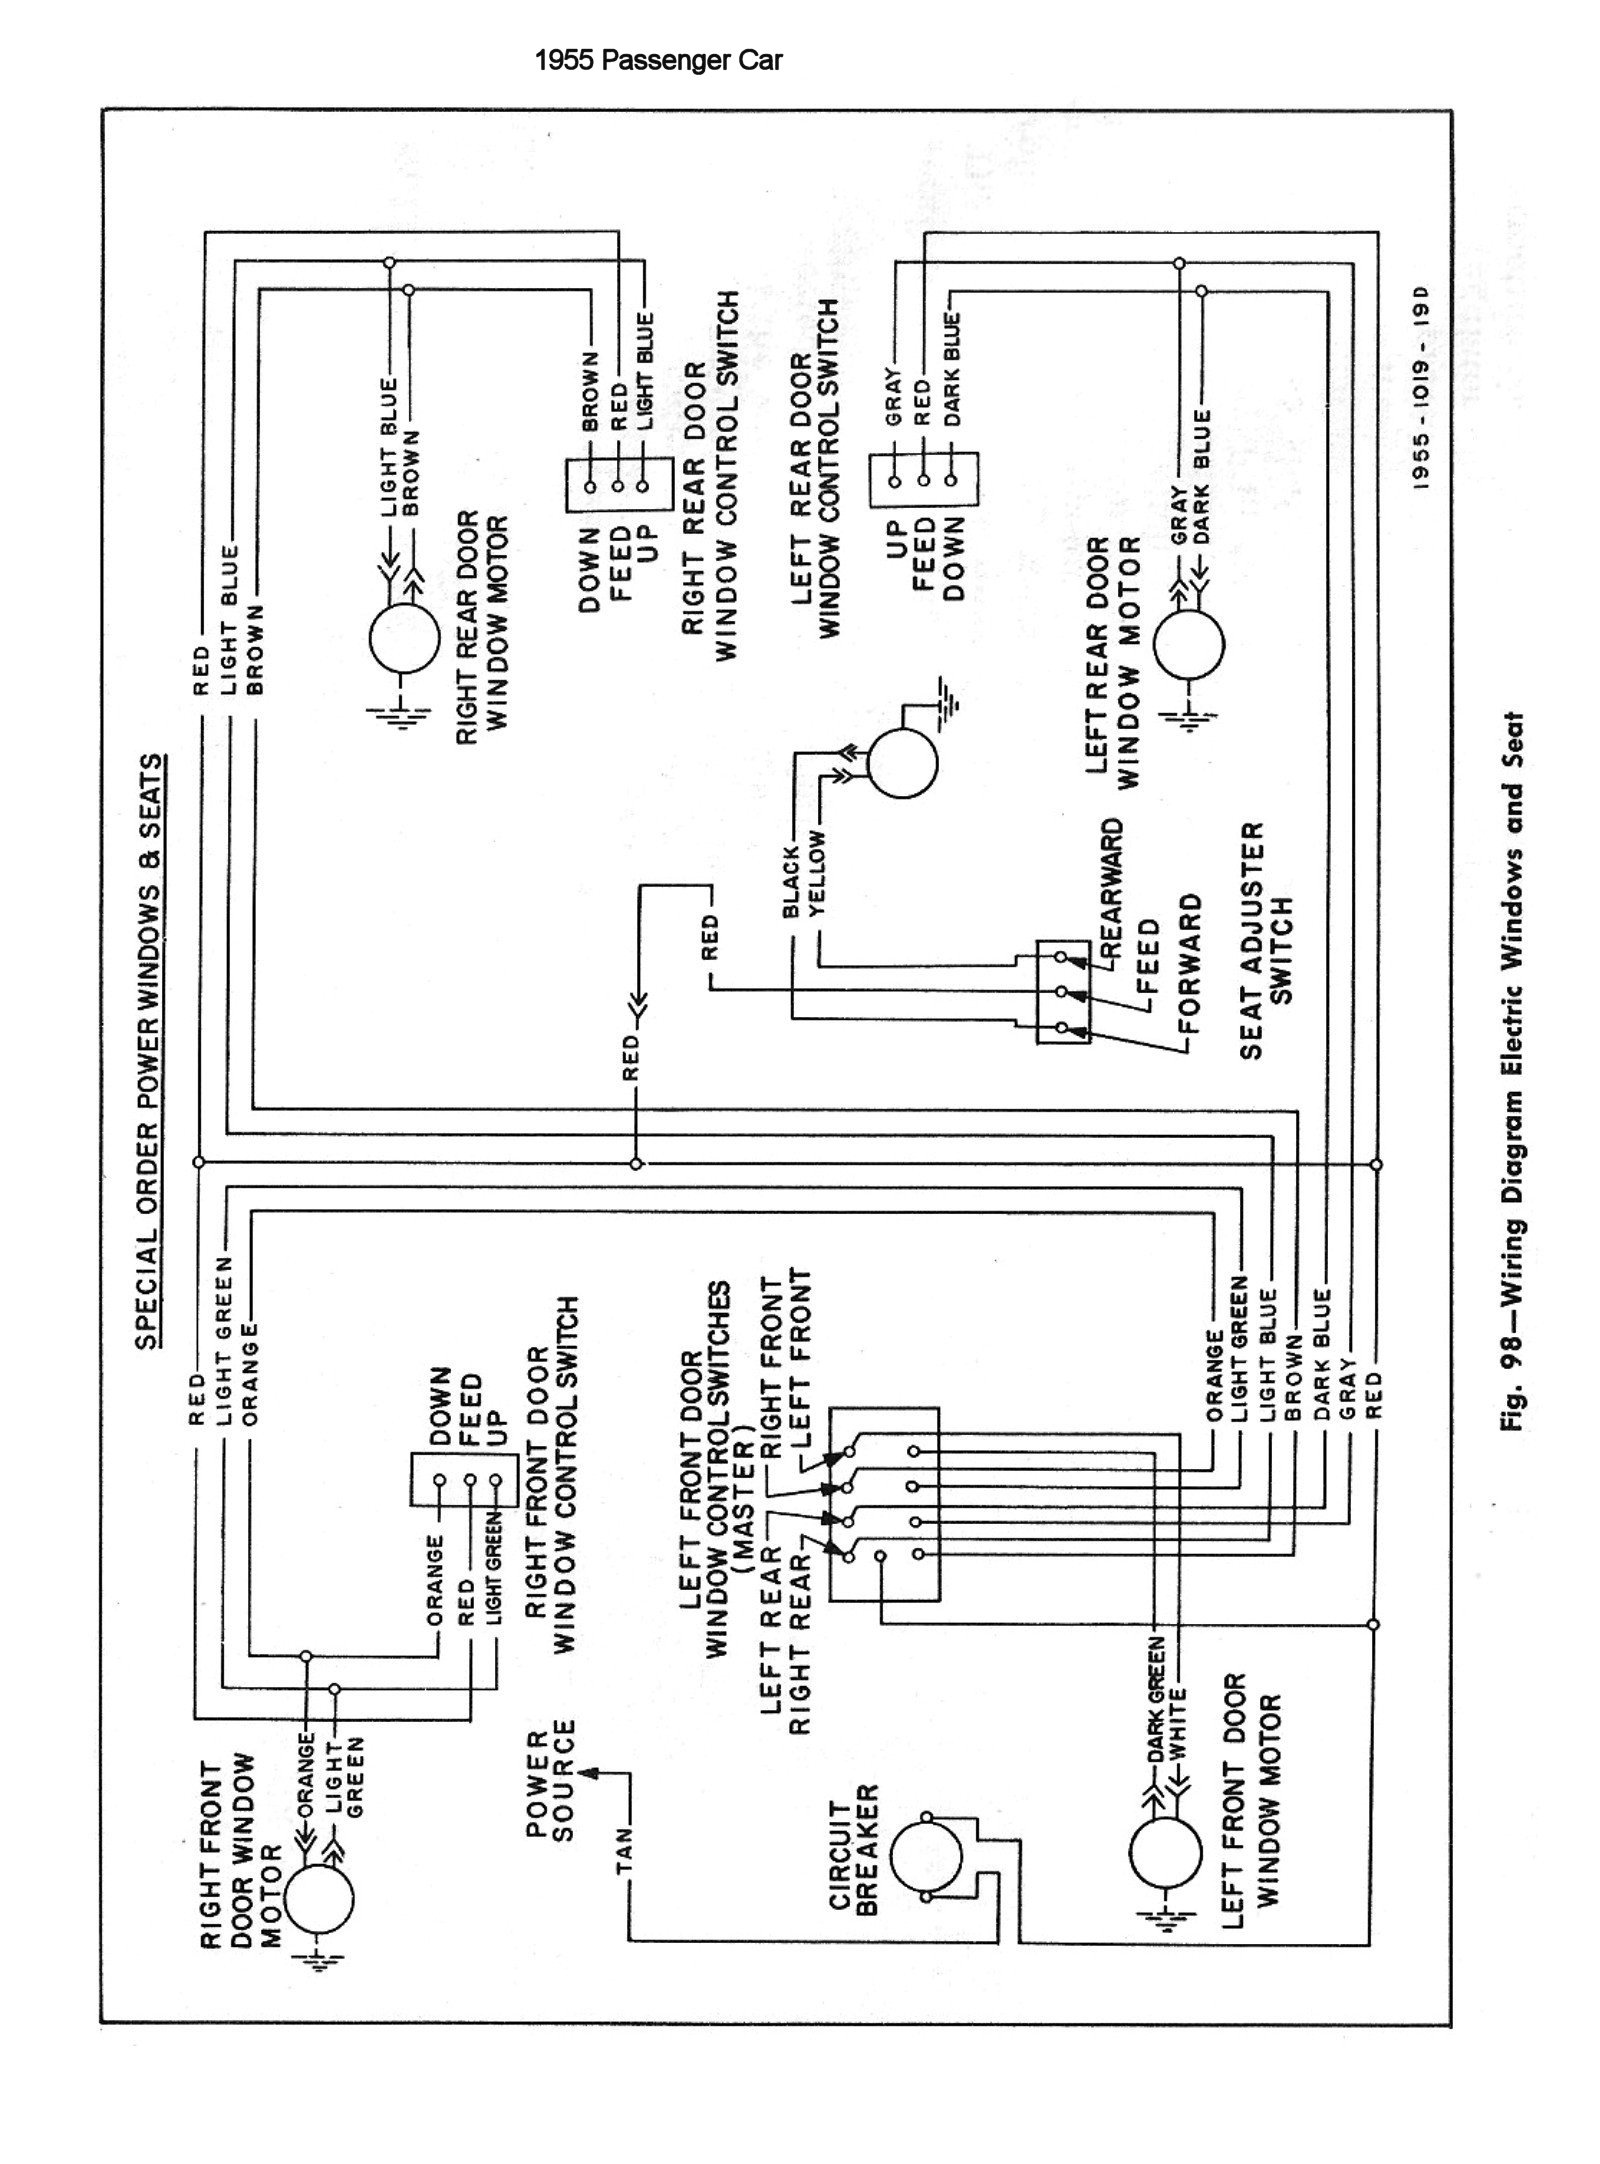 55csm0146 chevy wiring diagrams Basic 12 Volt Wiring Diagrams at bayanpartner.co